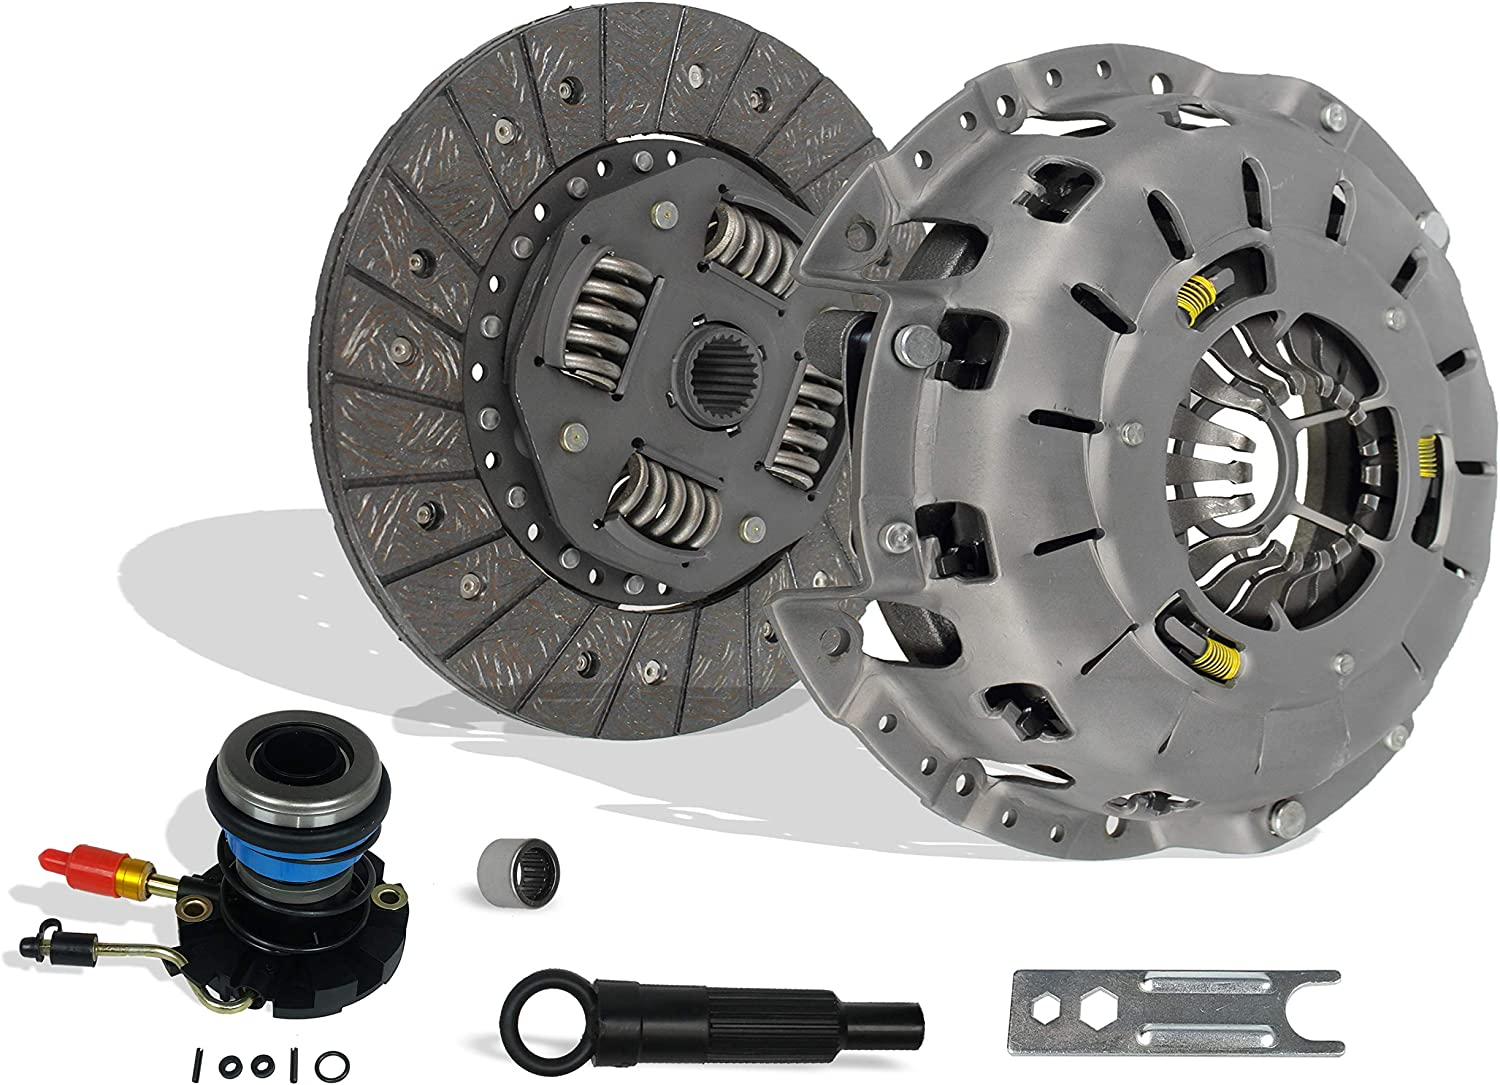 Clutch And Slave Kit Set Works With Ford Ranger Mazda B2300 B2500 B3000 Bse Xl Xlt Limited Sport Stx Ds 1995-2011 2.3L L4 Gas Dohc 2.5L Gas Sohc L4 3.0L V6 Gas Ovh (Self-Adjusting Clutch Cover)